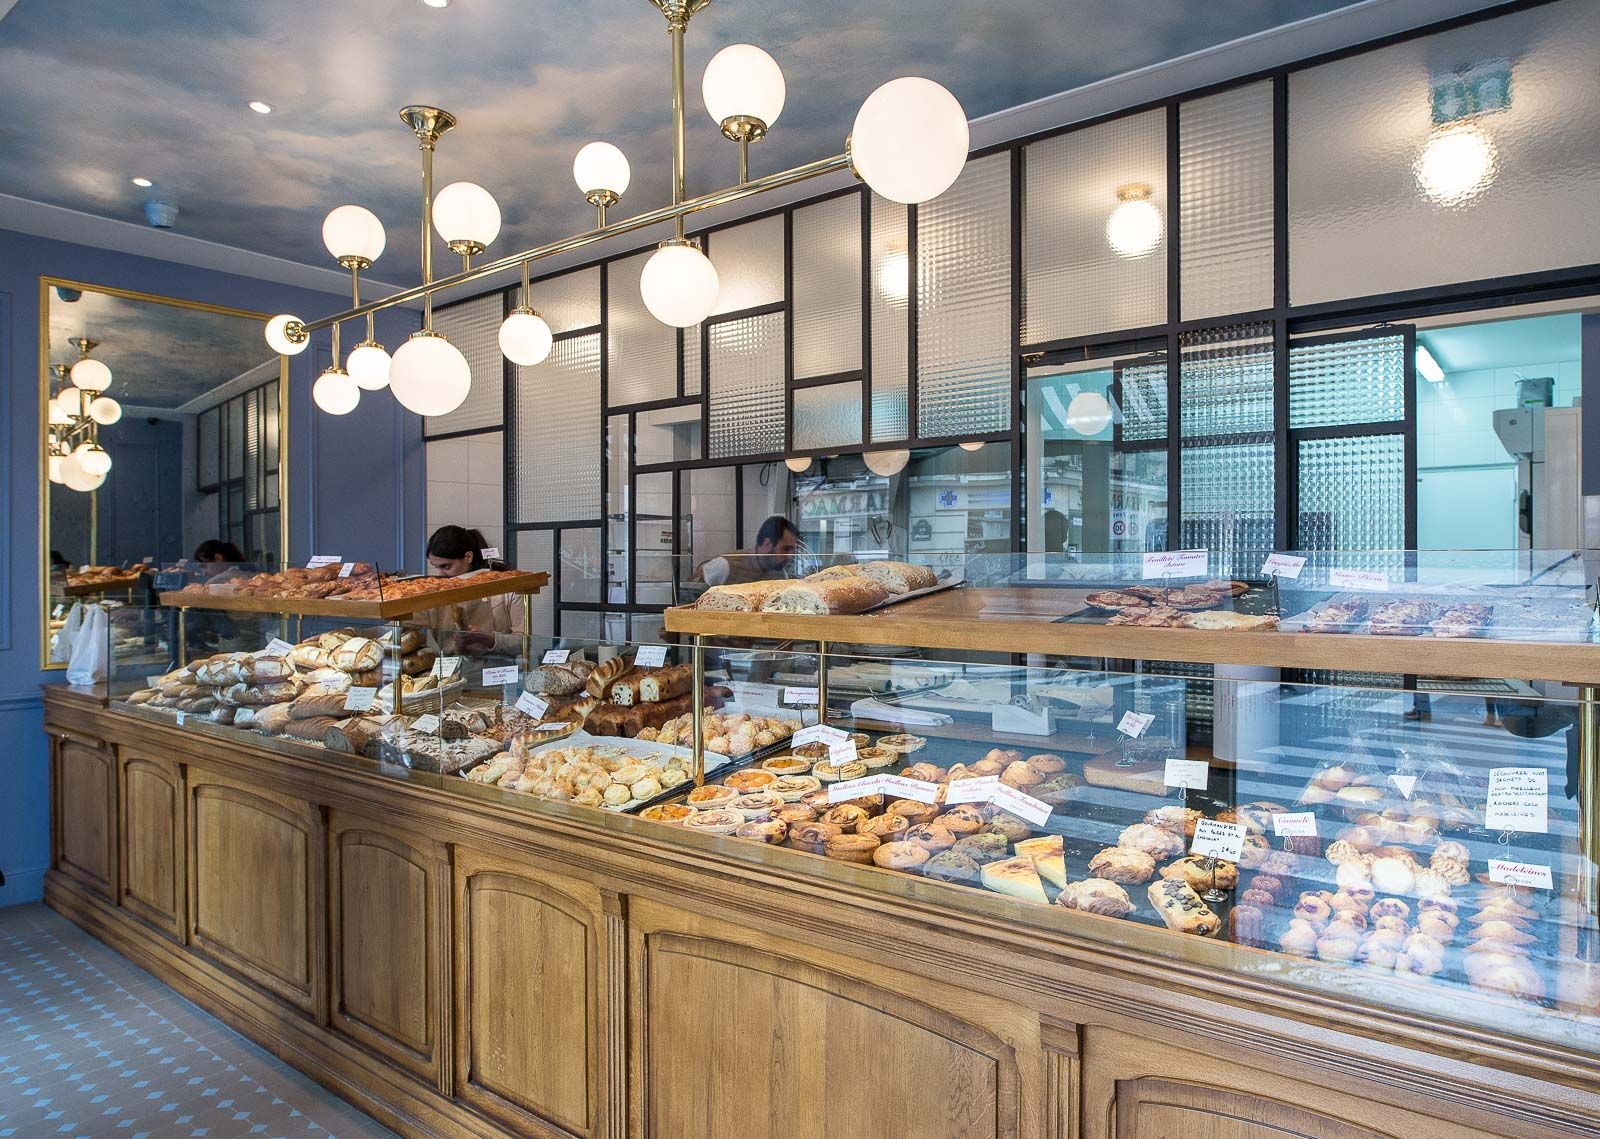 Gana boulangerie architecte interieur decorateur paris for Desing interieur